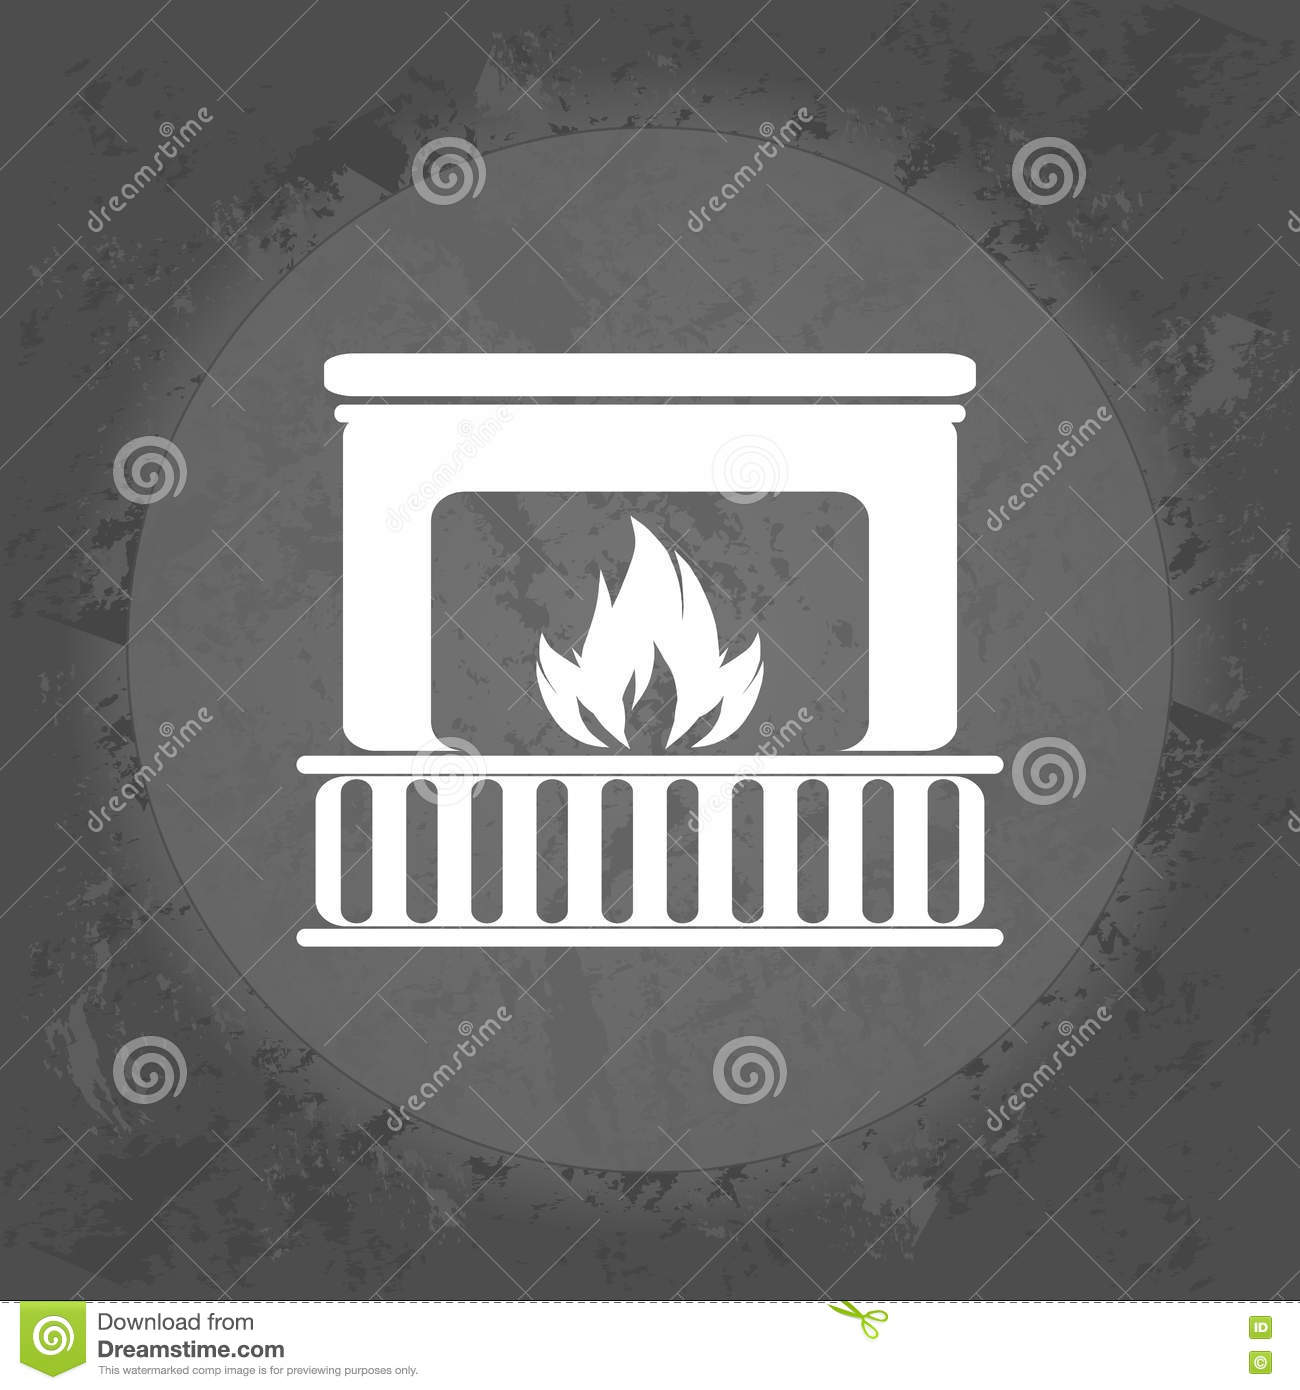 Warmth Cartoons Illustrations Amp Vector Stock Images